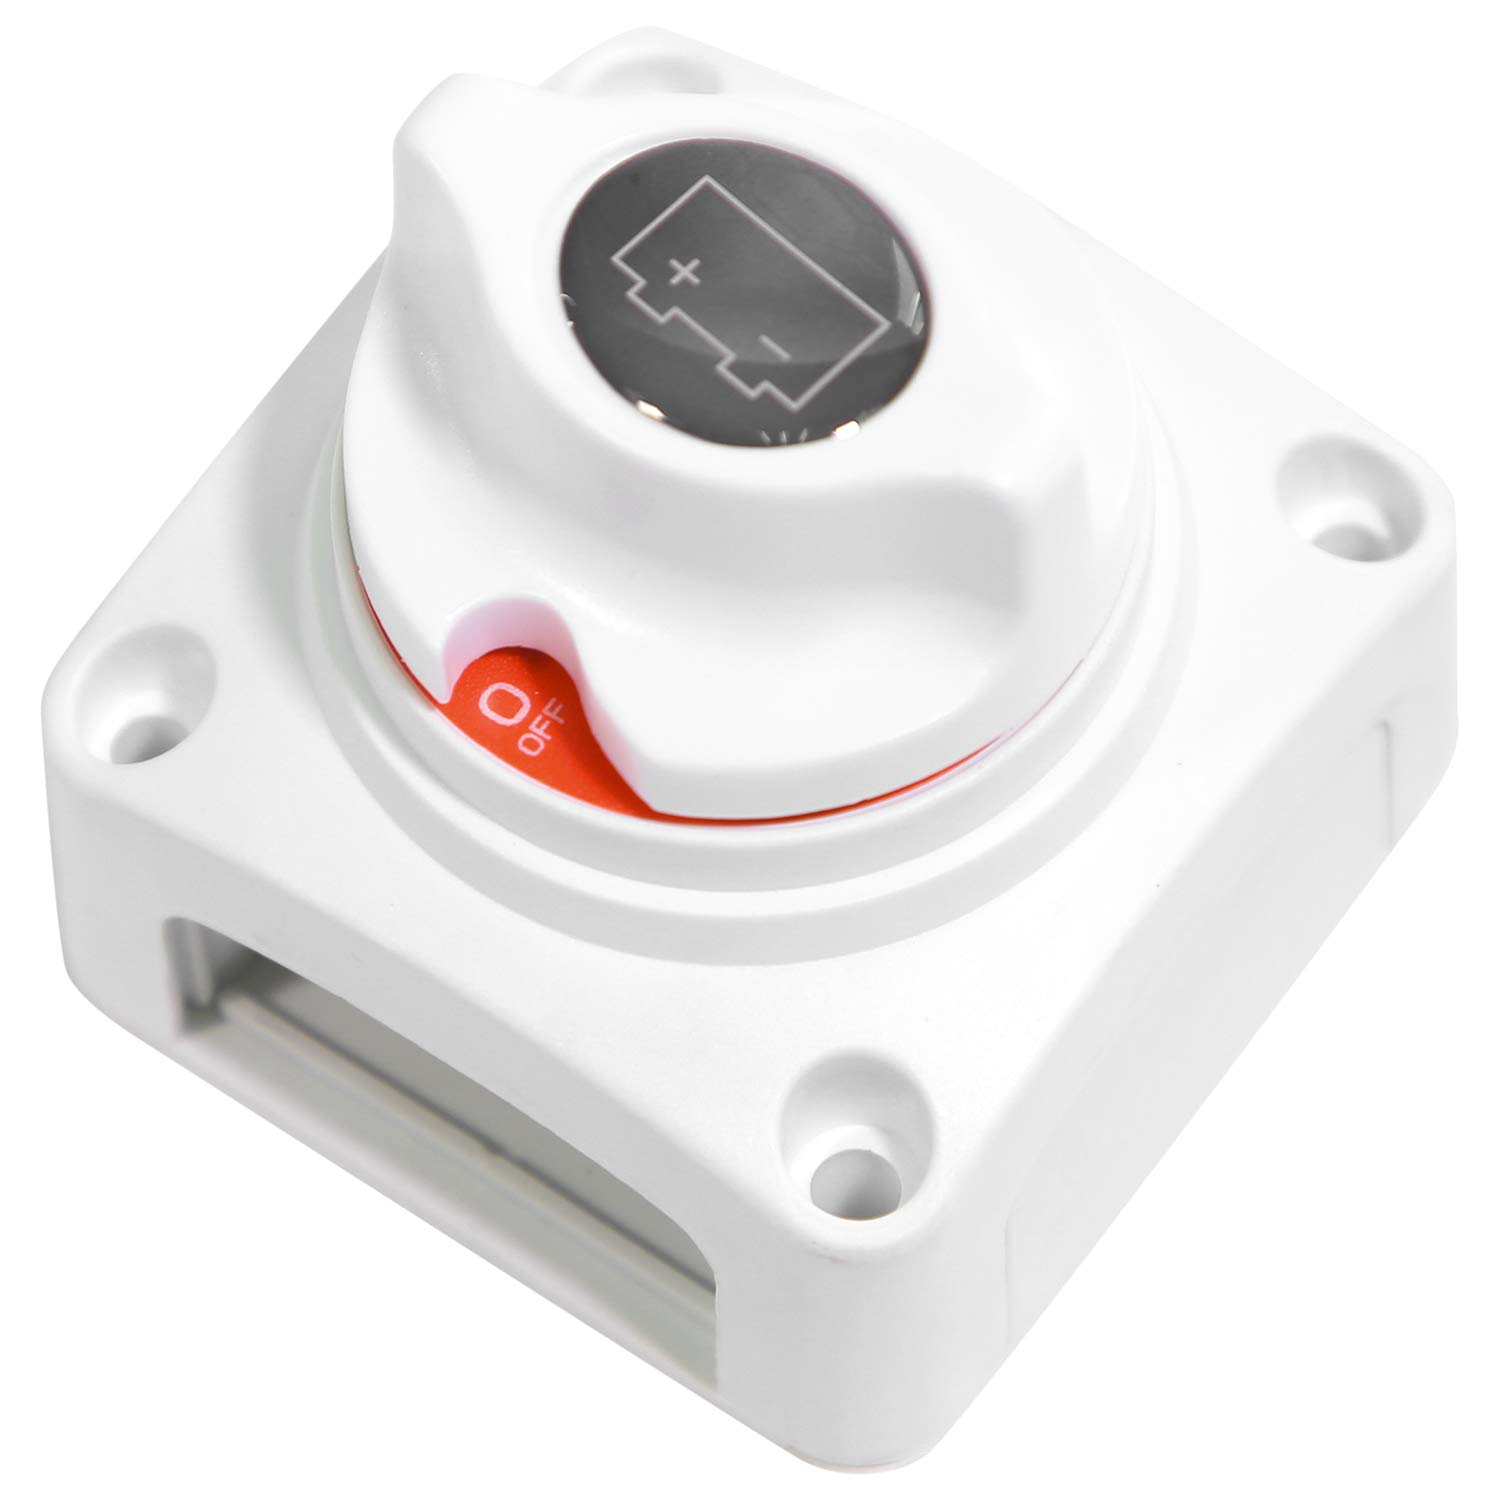 DasMarine 2 Position Battery NEW before selling Sw Disconnect Switch 5 popular